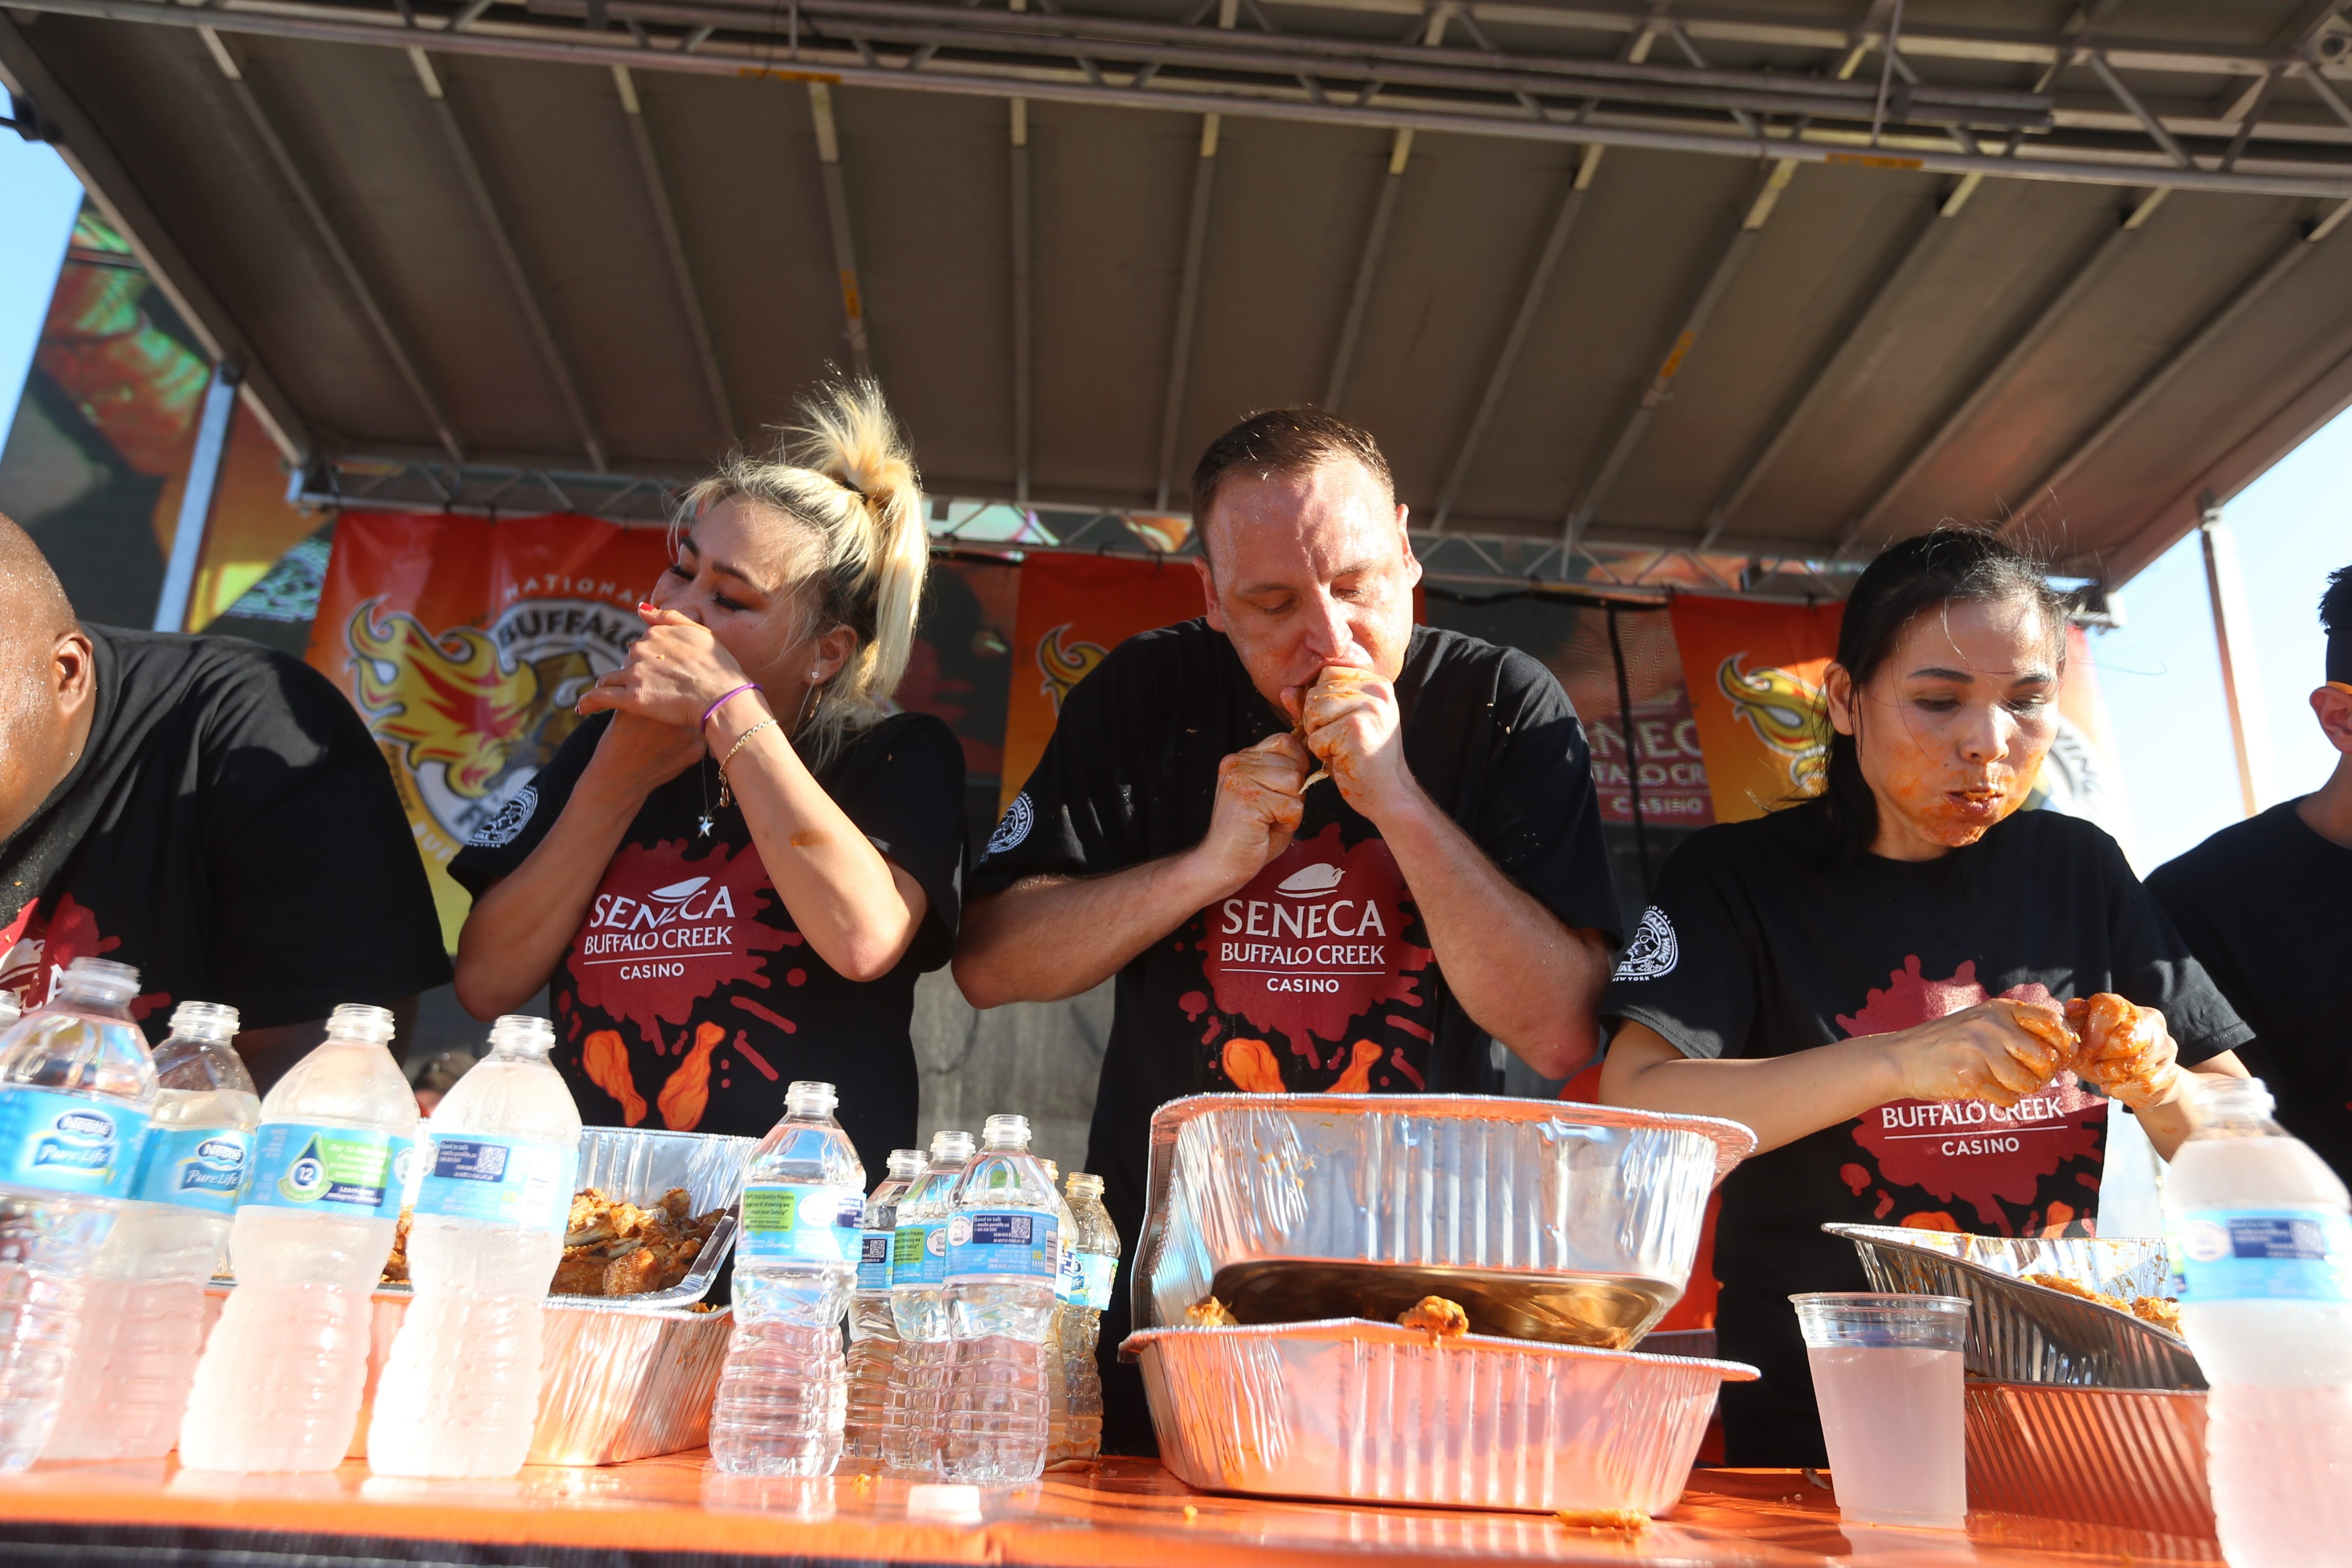 """Miki Sudo, left, ate 170 wings to take second place, Joey """"Jaws"""" Chestnut consumed 205 to take first place, and Sonya """"The Black Widow"""" Thomas ate 157 wings to place third in the U.S. Chicken Wing Eating Championship at Coca-Cola Field on Sunday."""